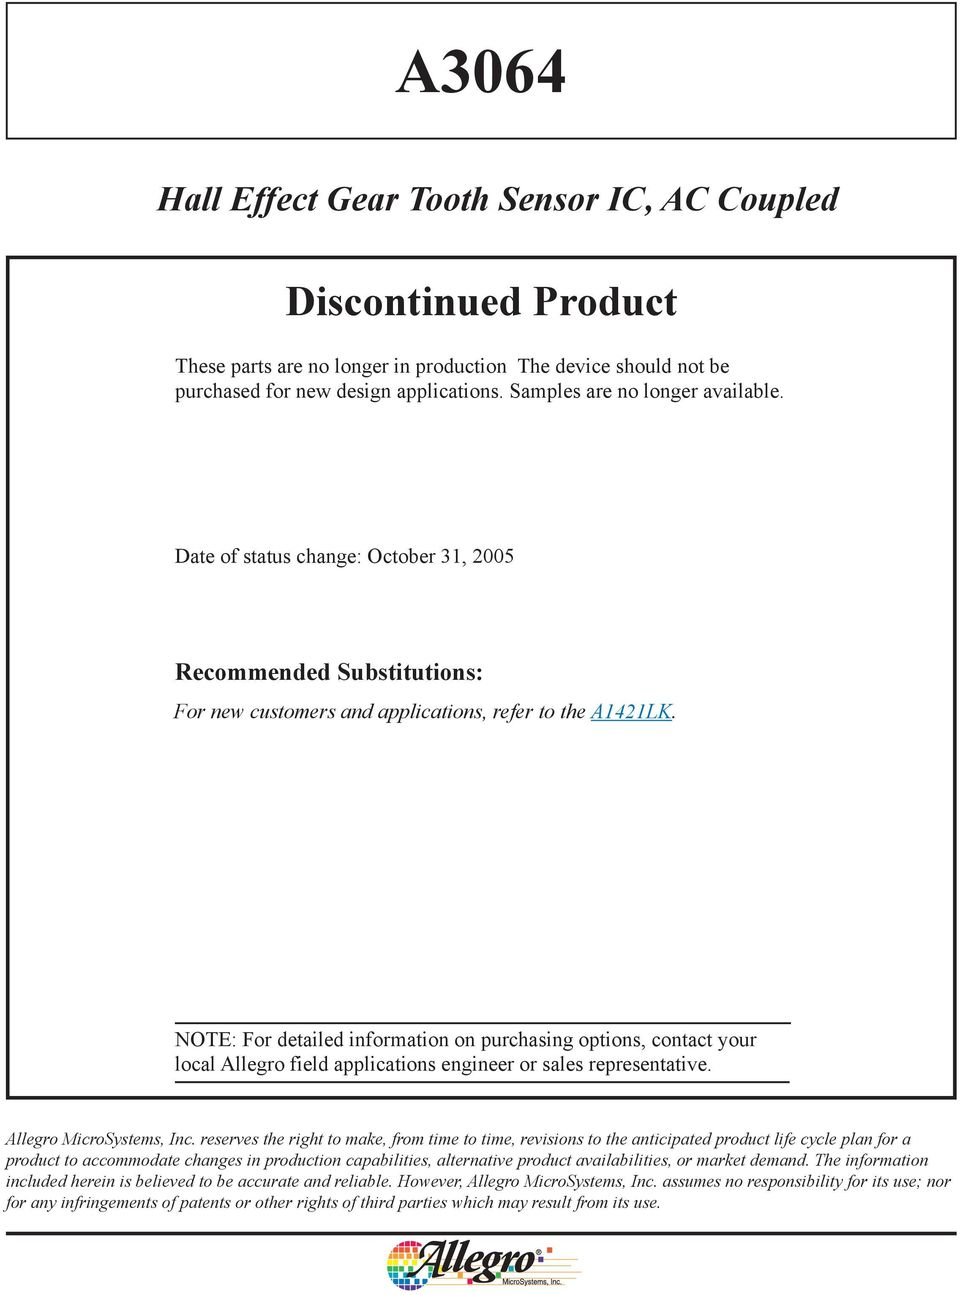 A3064 Hall Effect Gear Tooth Sensor Ic Ac Coupled Discontinued Magnetic Field Ad22151 Magneticsensor Sensorcircuit Note For Detailed Information On Purchasing Options Contact Your Local Allegro Applications Engineer